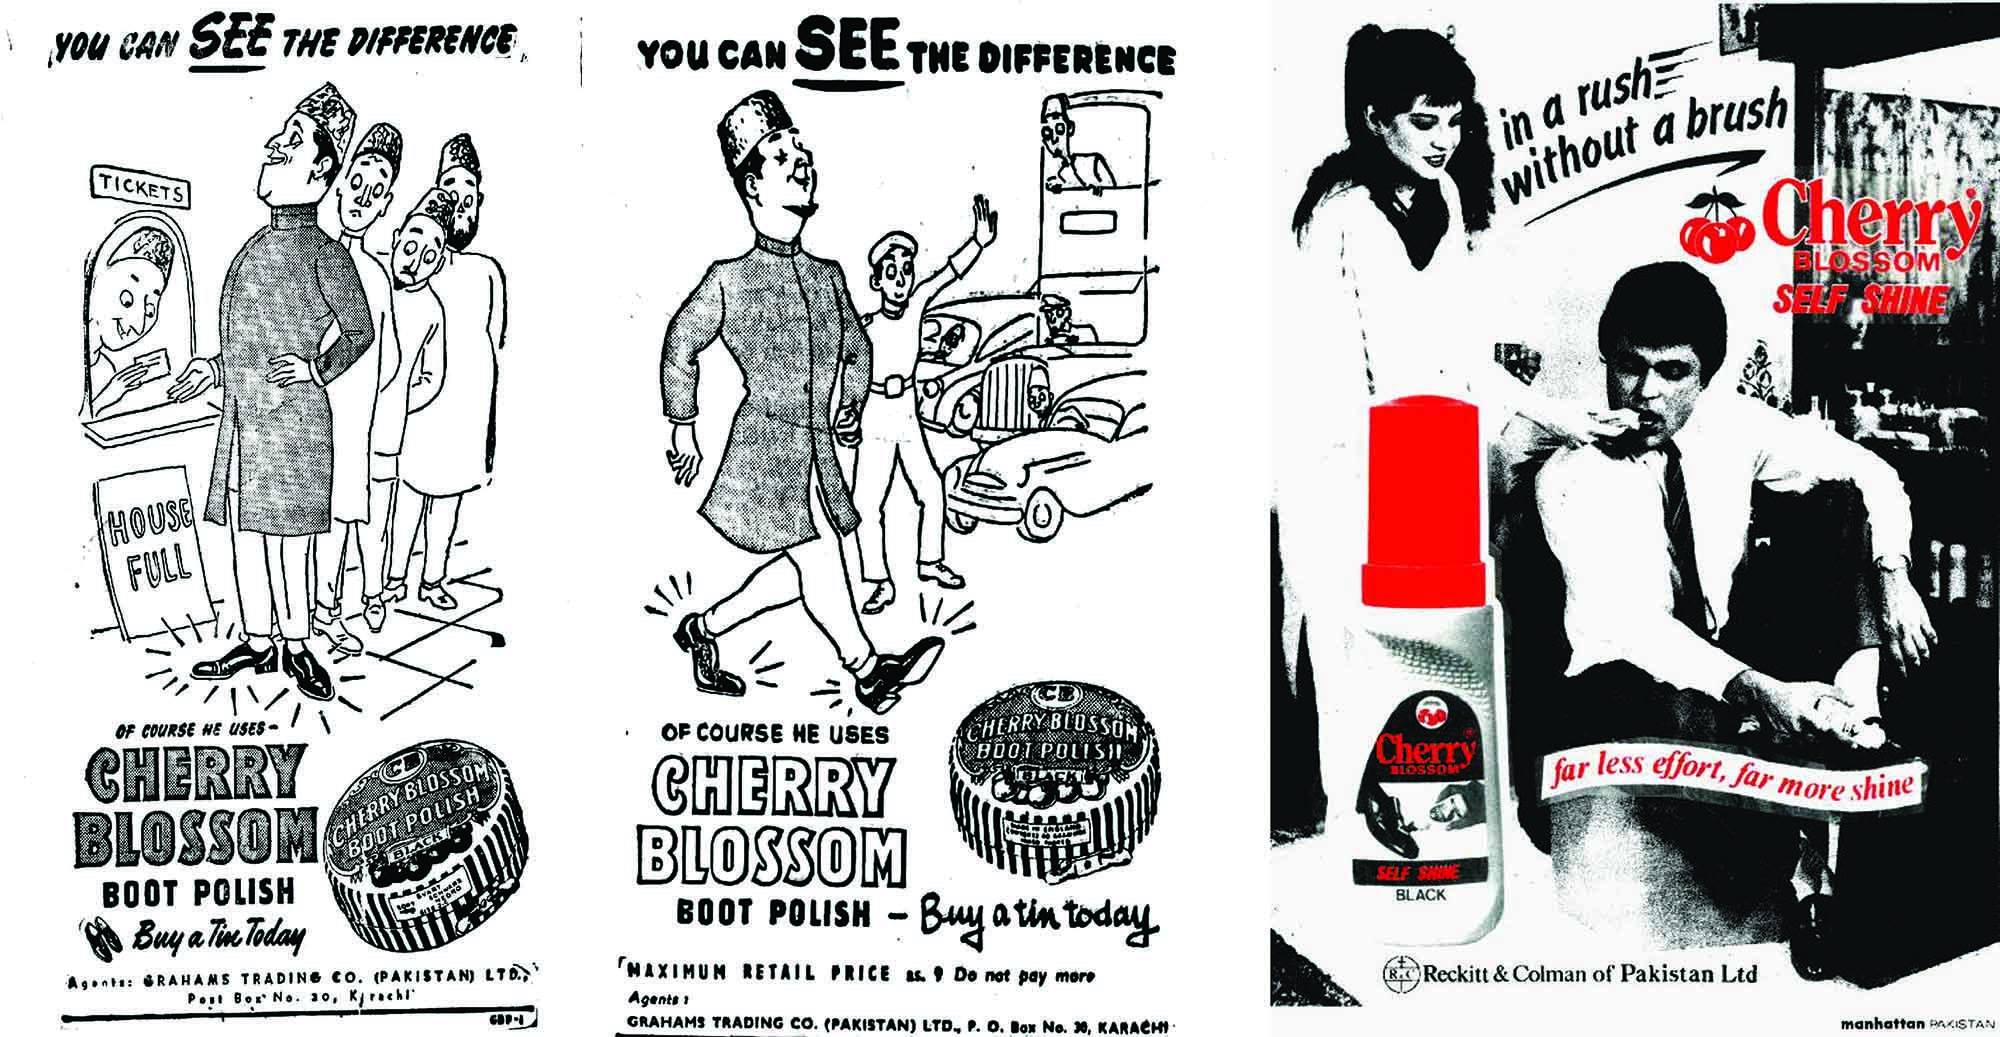 Cherry Blossom ads from 1952, 1953 and 1989